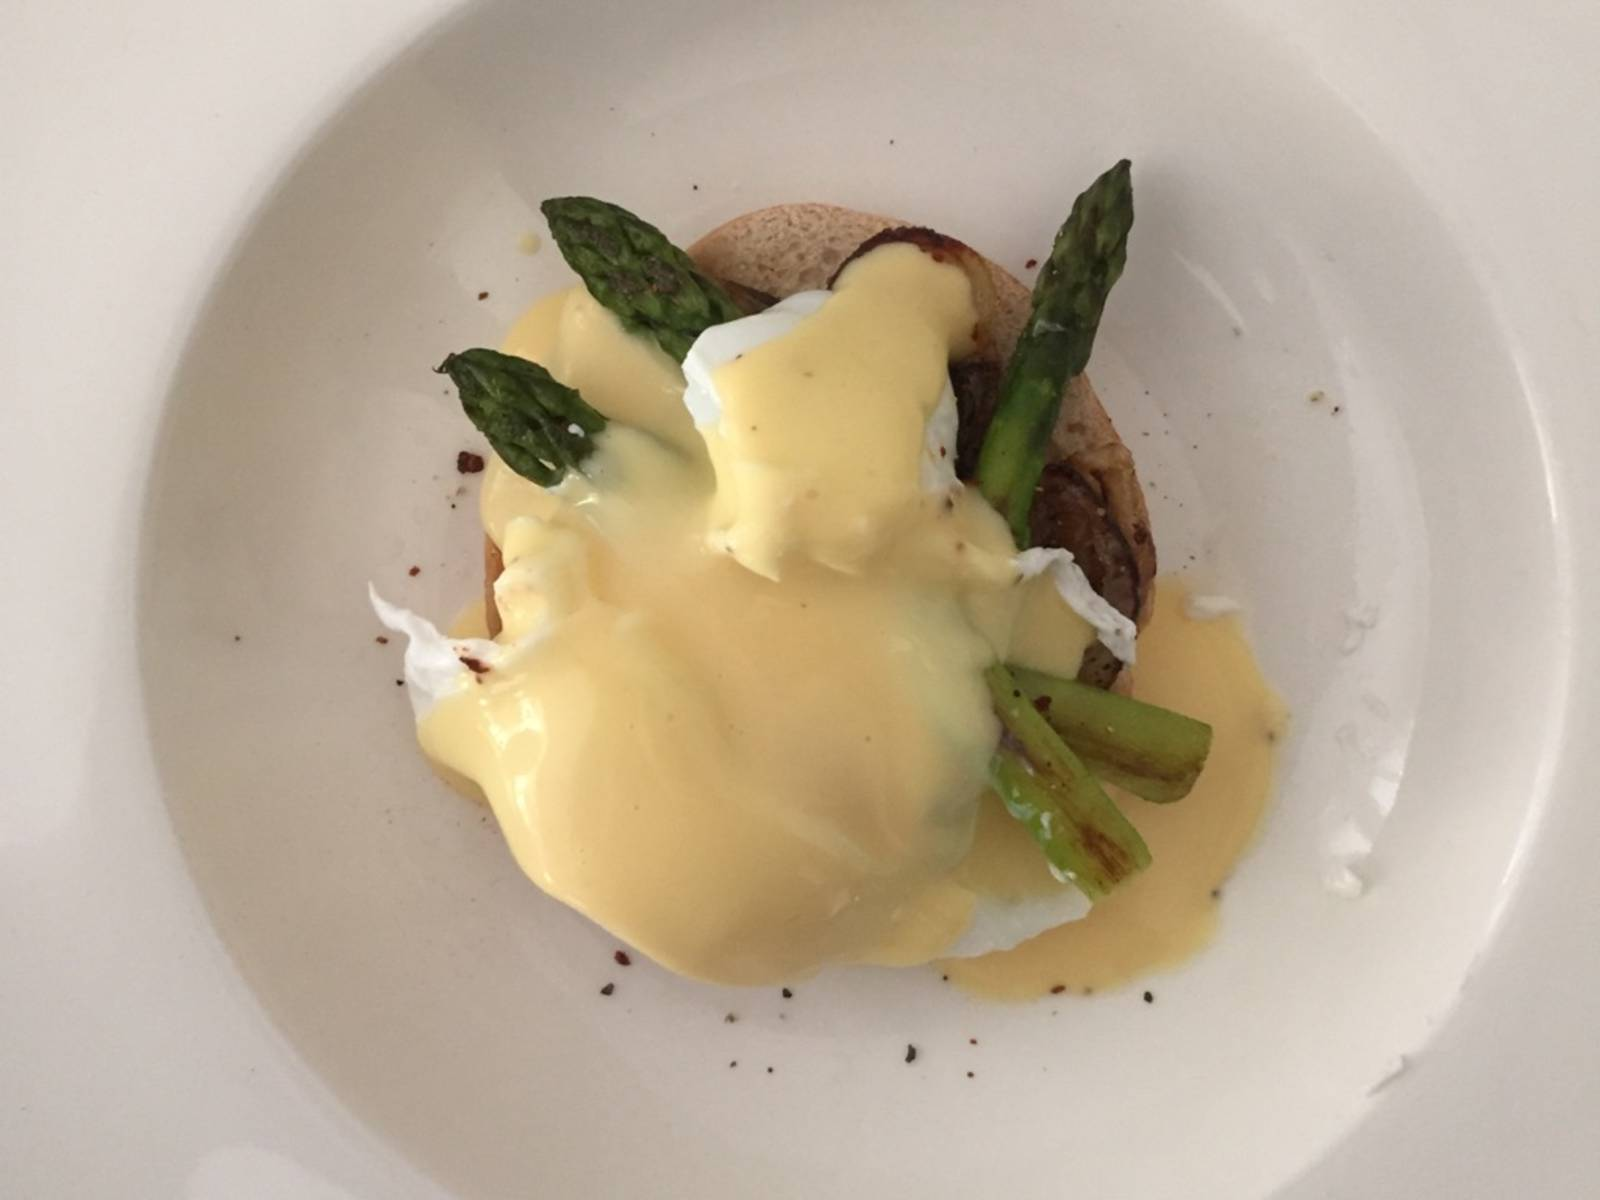 Serve with Hollandaise sauce and enjoy!